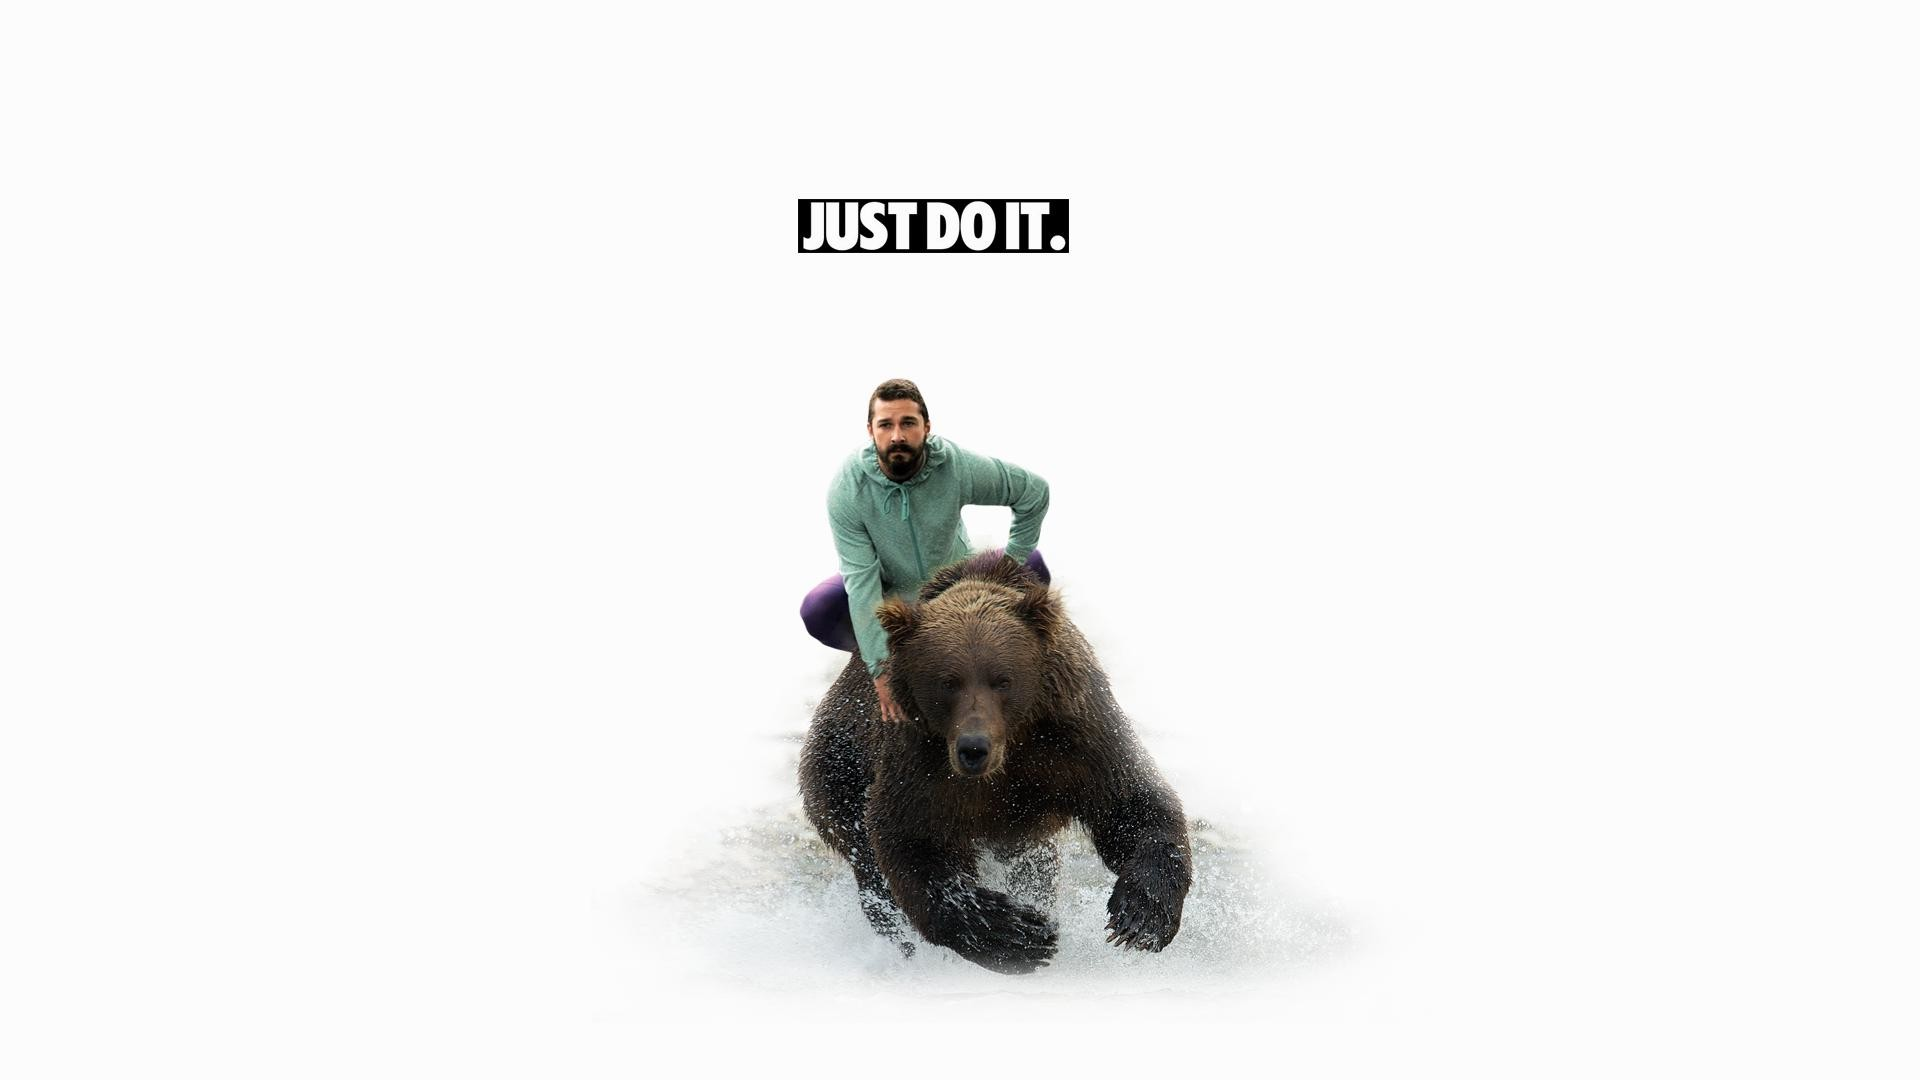 wallpaper.wiki-Shia-labeouf-white-bear-grizzly-bear-just-do-it -images-PIC-WPE0010487